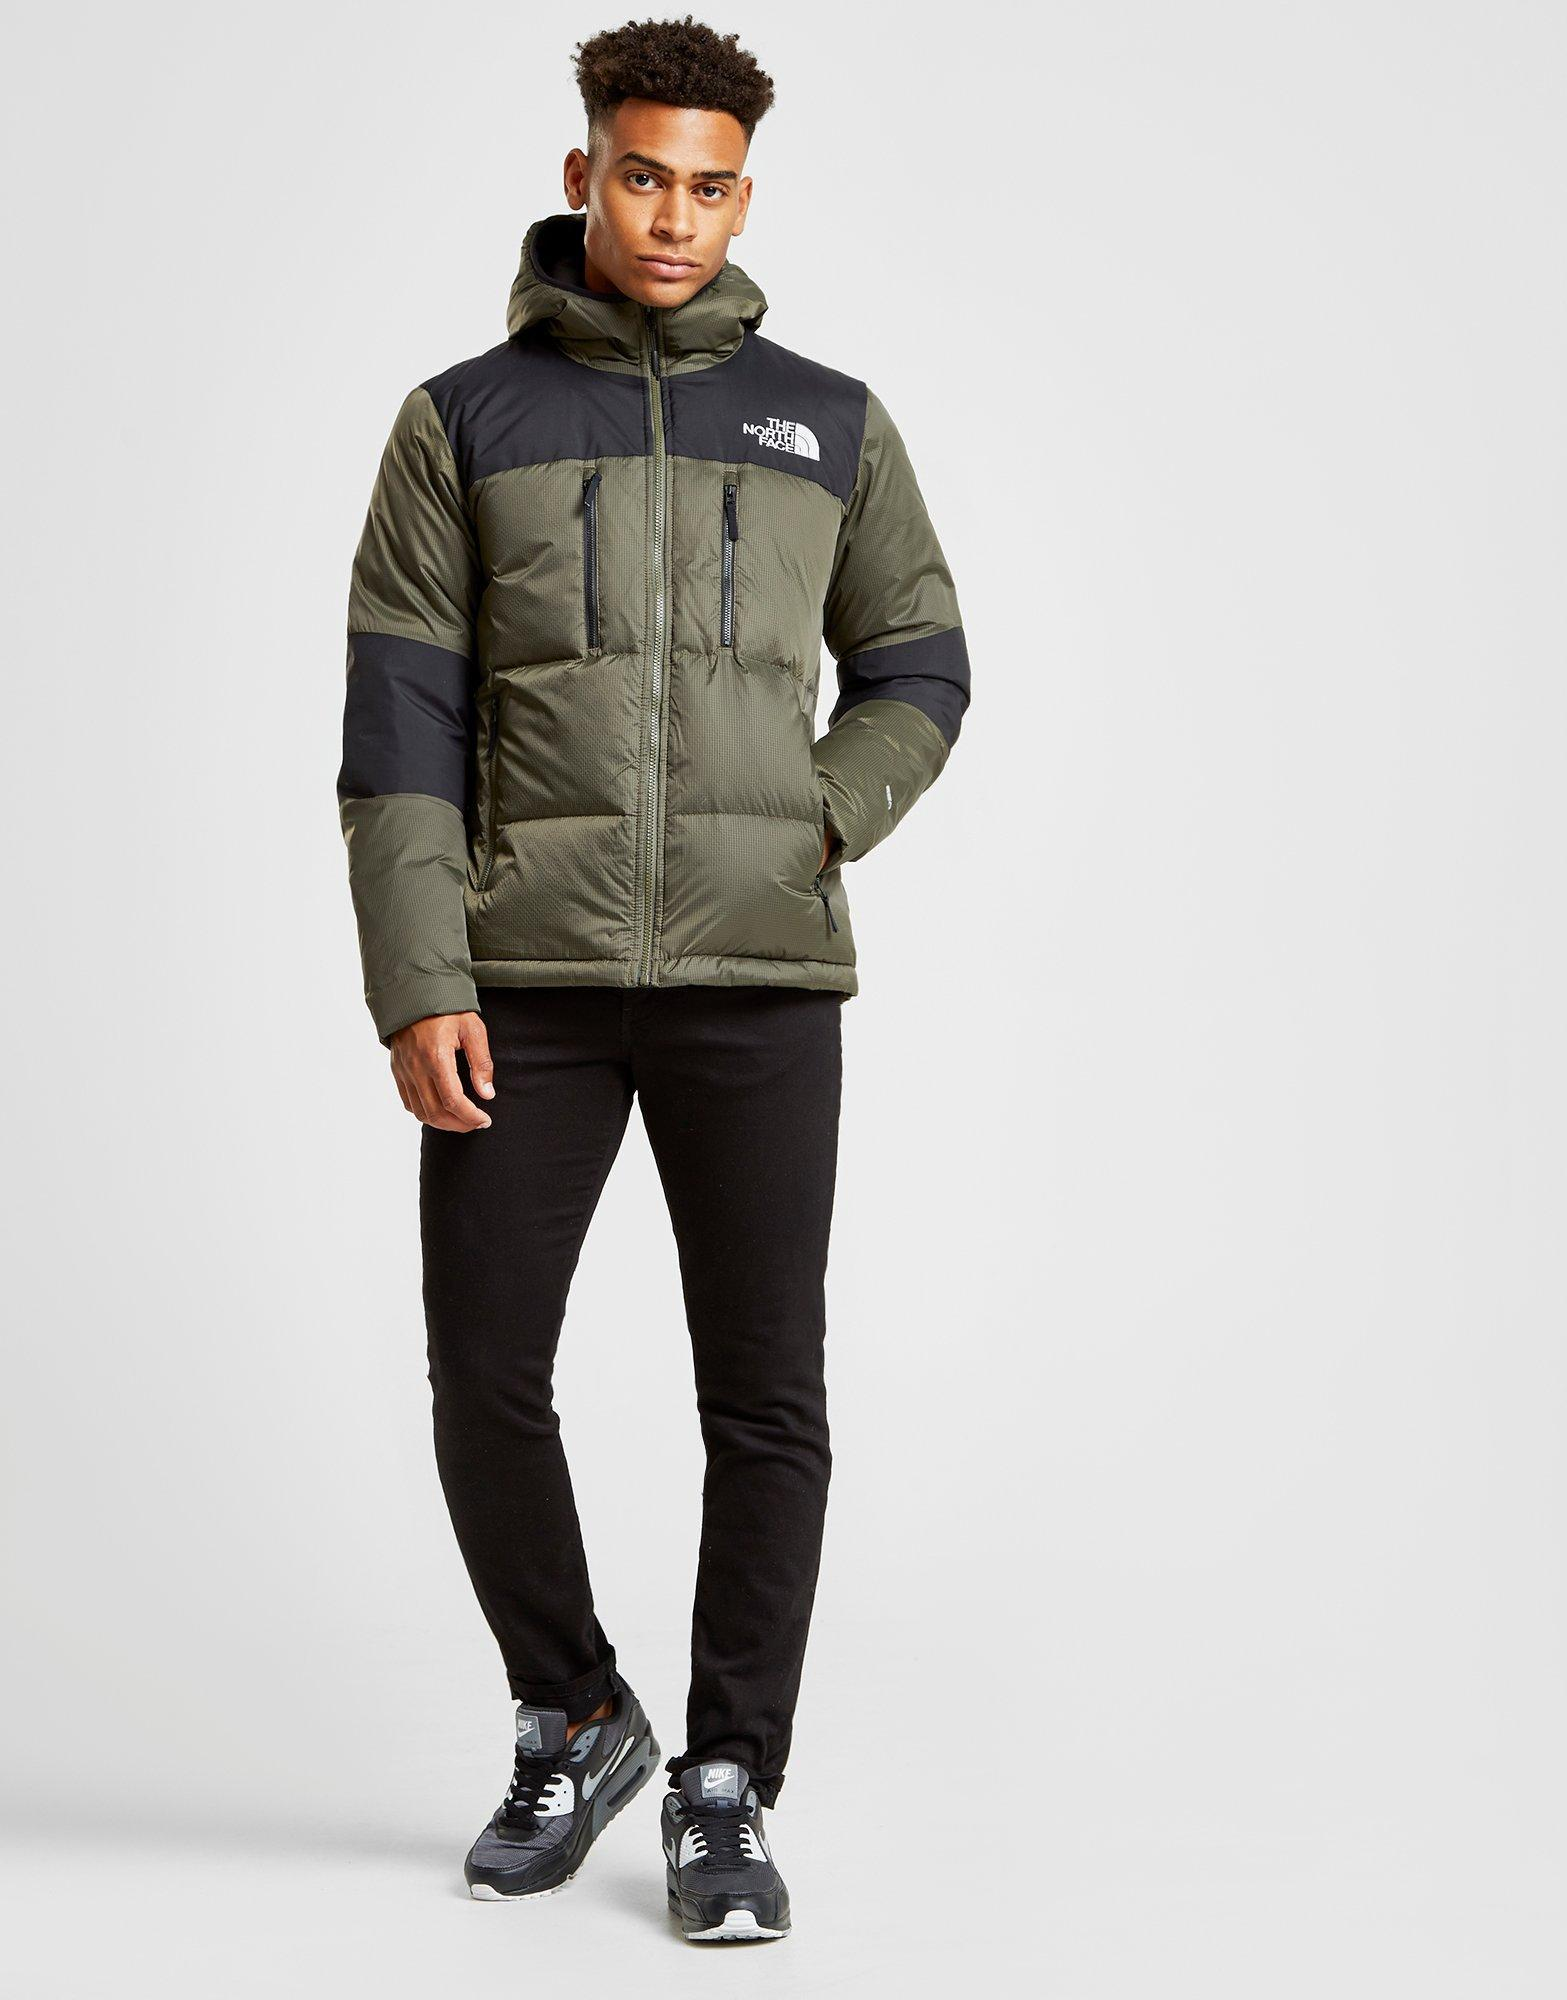 fa350fe1b The North Face Himalayan Down Jacket in Green for Men - Lyst